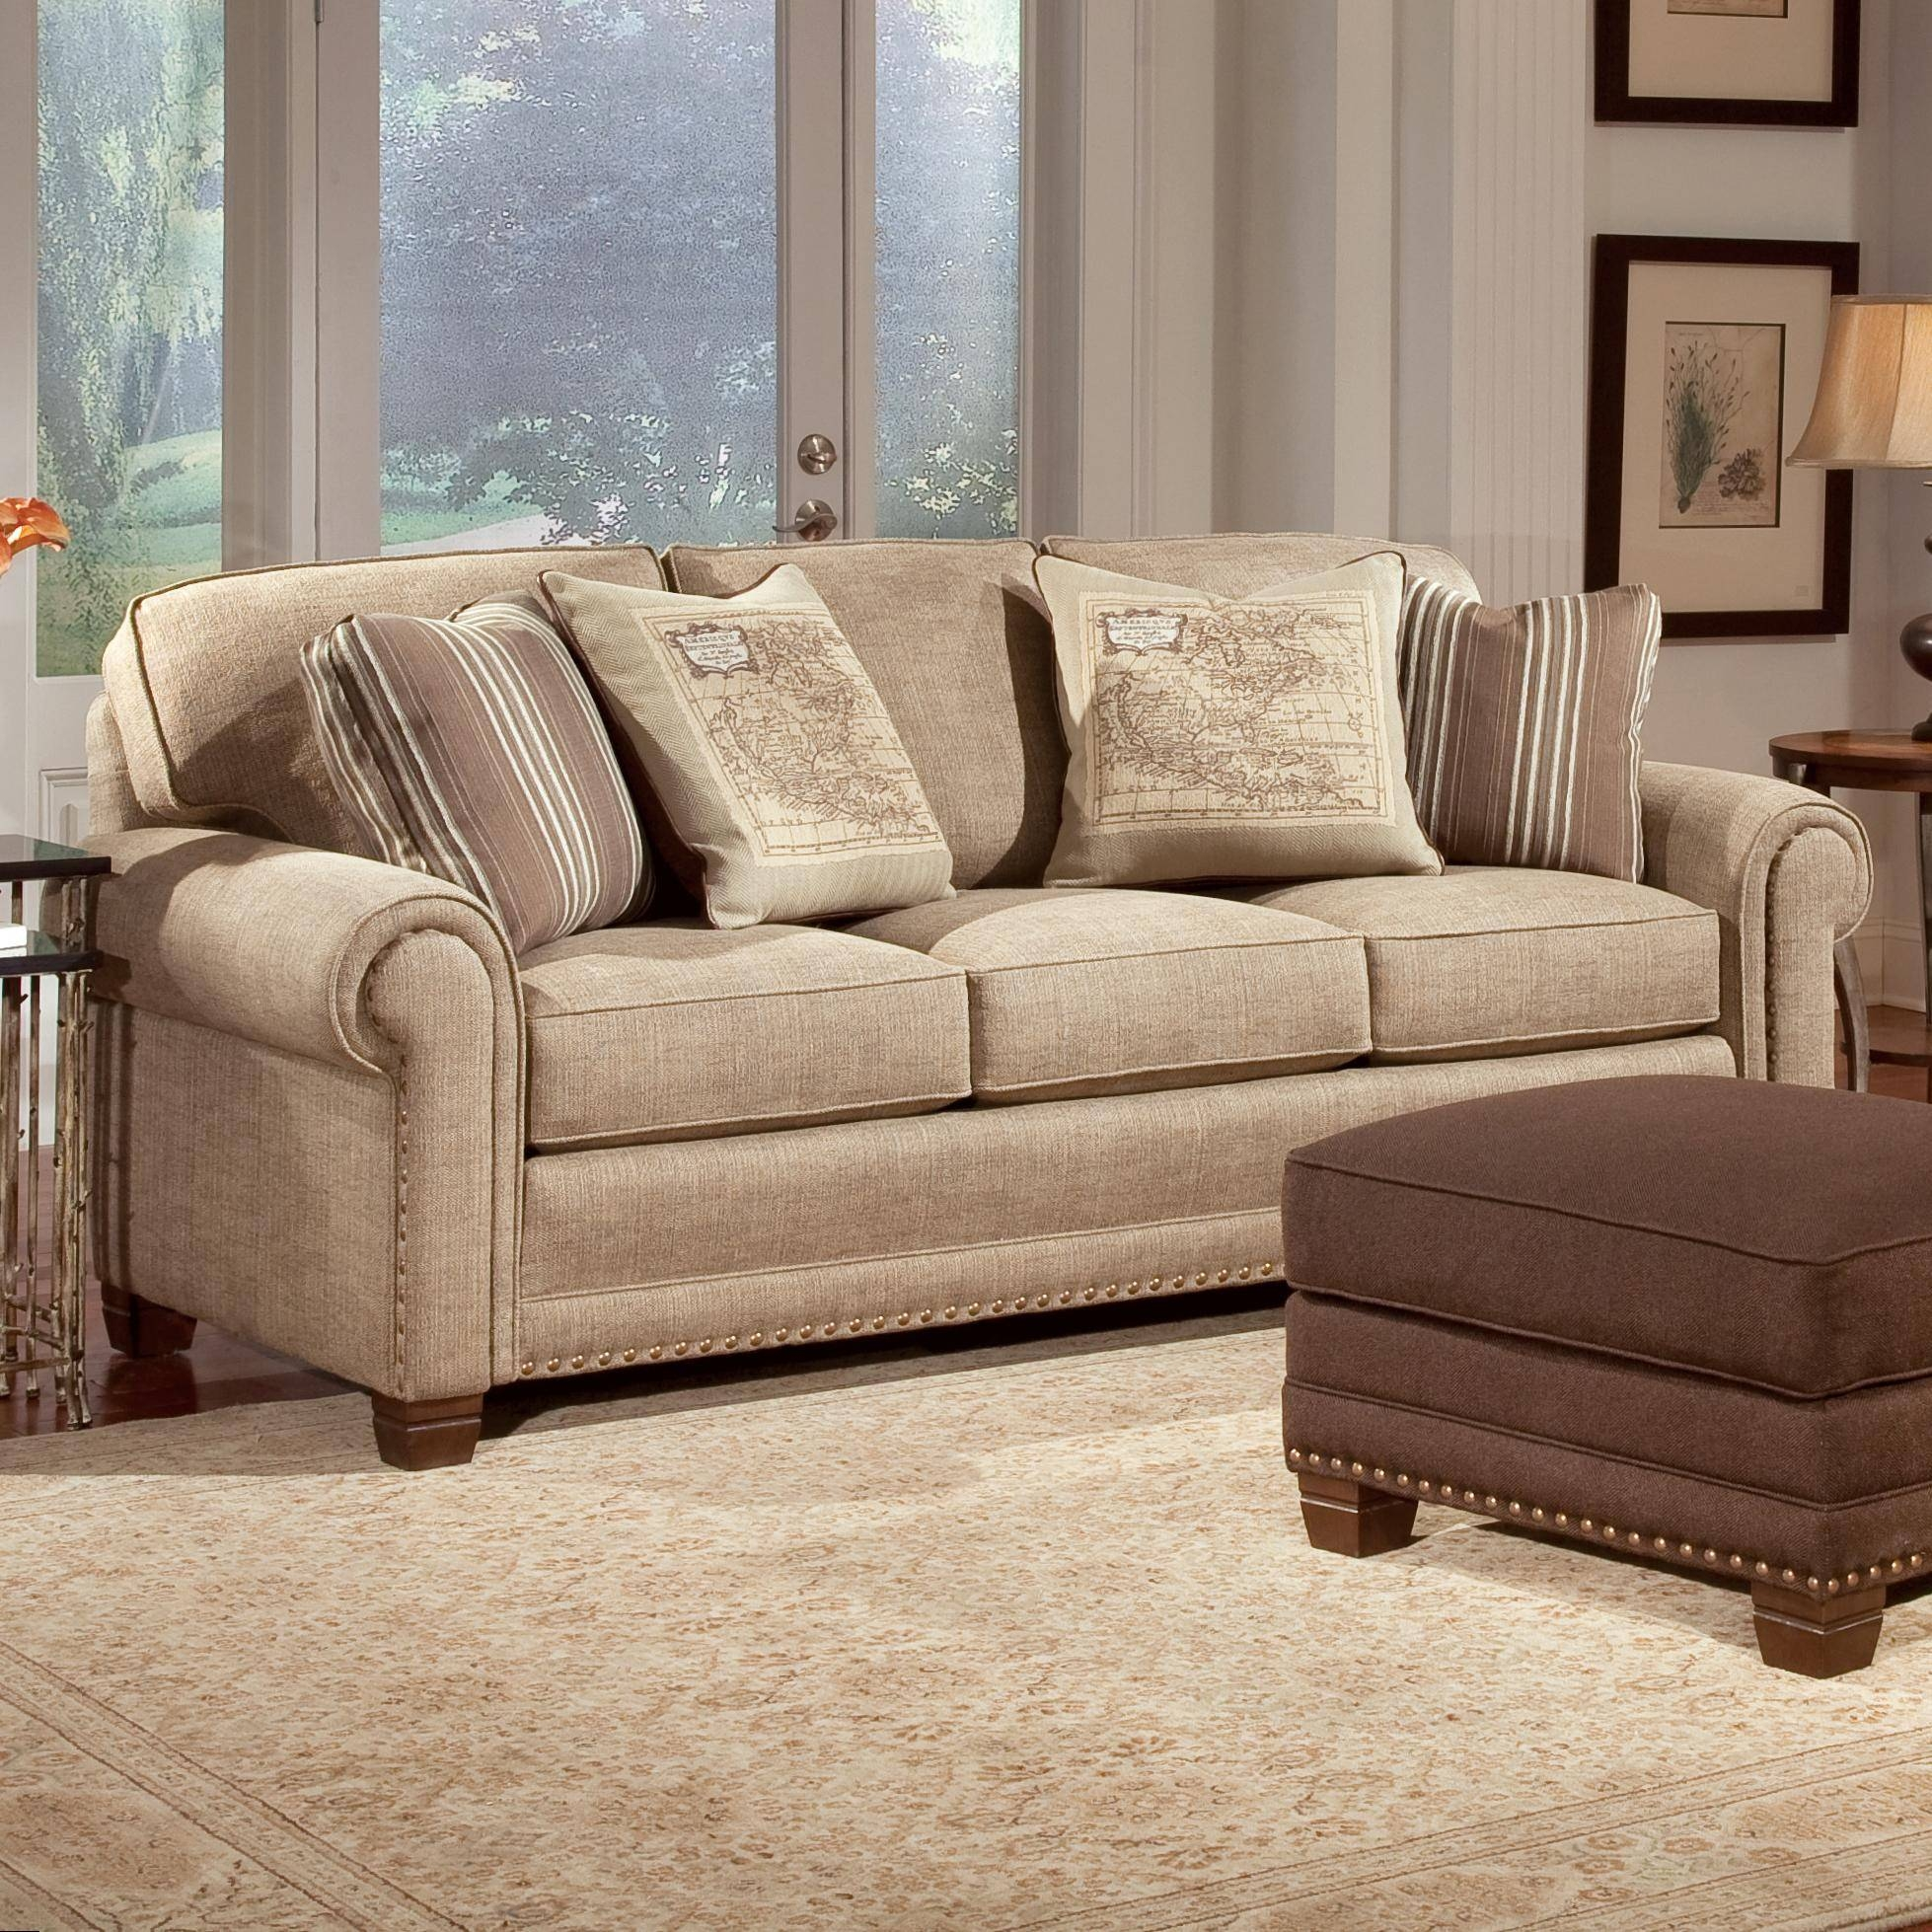 Sofa Maryland Home Design Furniture Decorating Amazing Simple With throughout Sofa Maryland (Image 12 of 25)